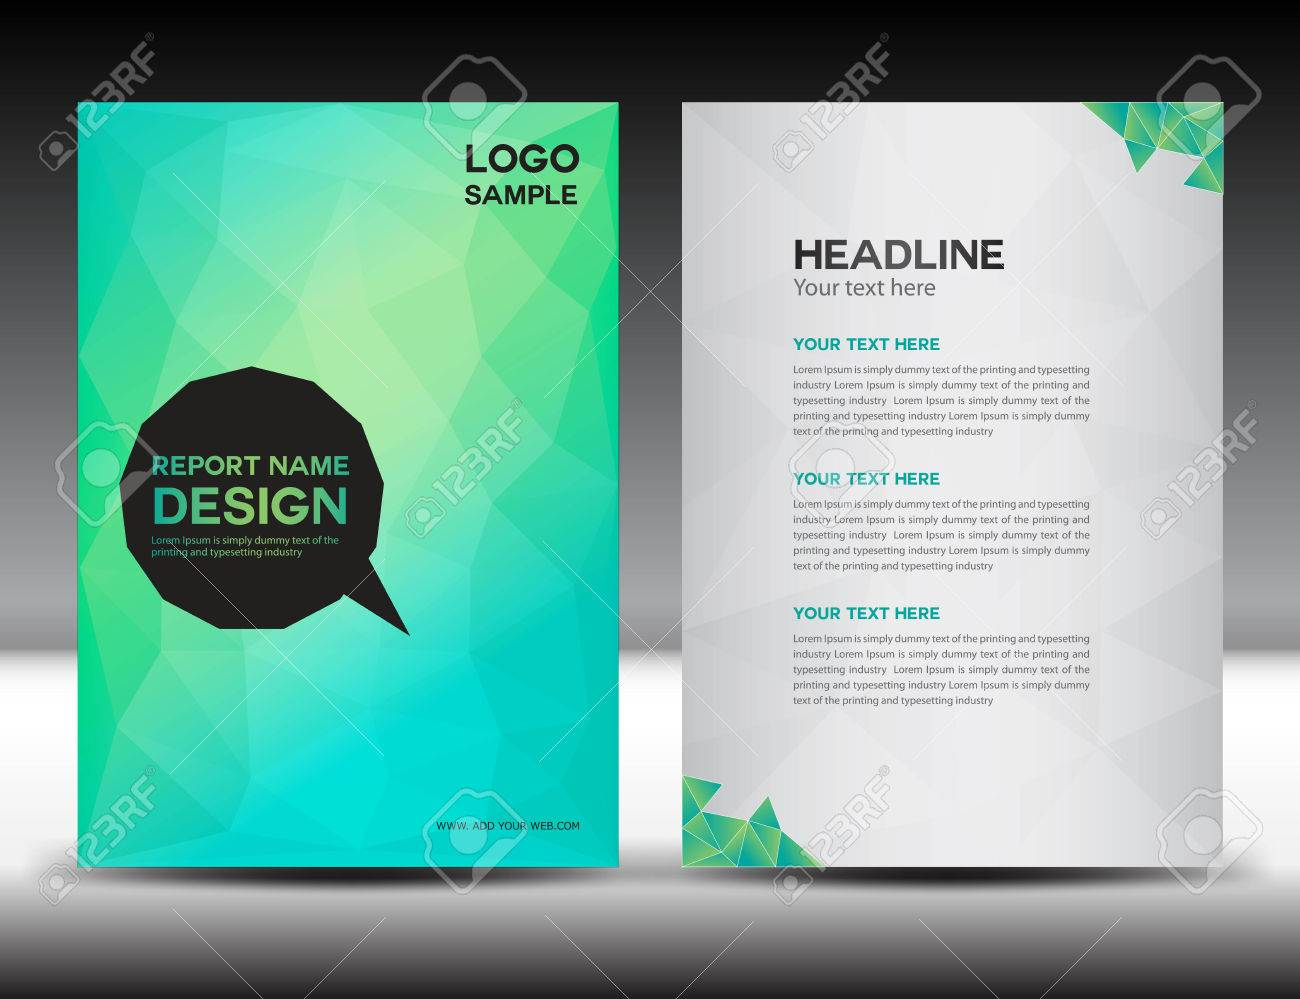 green cover annual report template polygon background brochure green cover annual report template polygon background brochure design cover template flyer